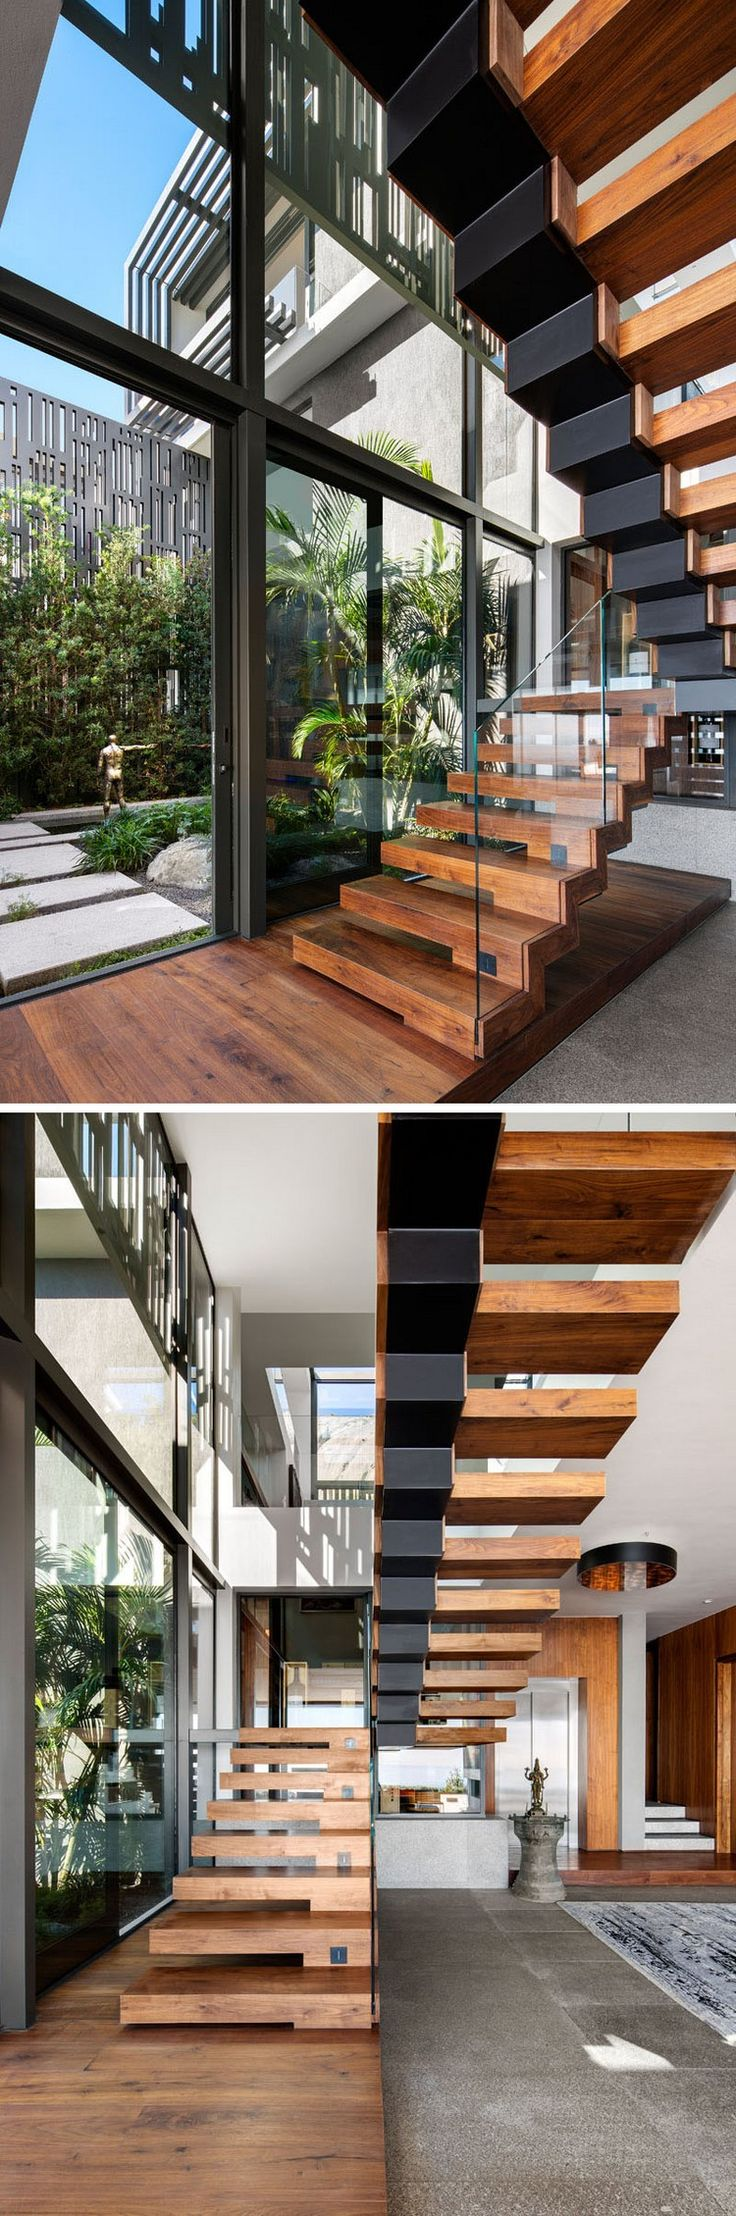 die besten 25 moderne treppe ideen auf pinterest modernes treppe design sch ne treppe und. Black Bedroom Furniture Sets. Home Design Ideas